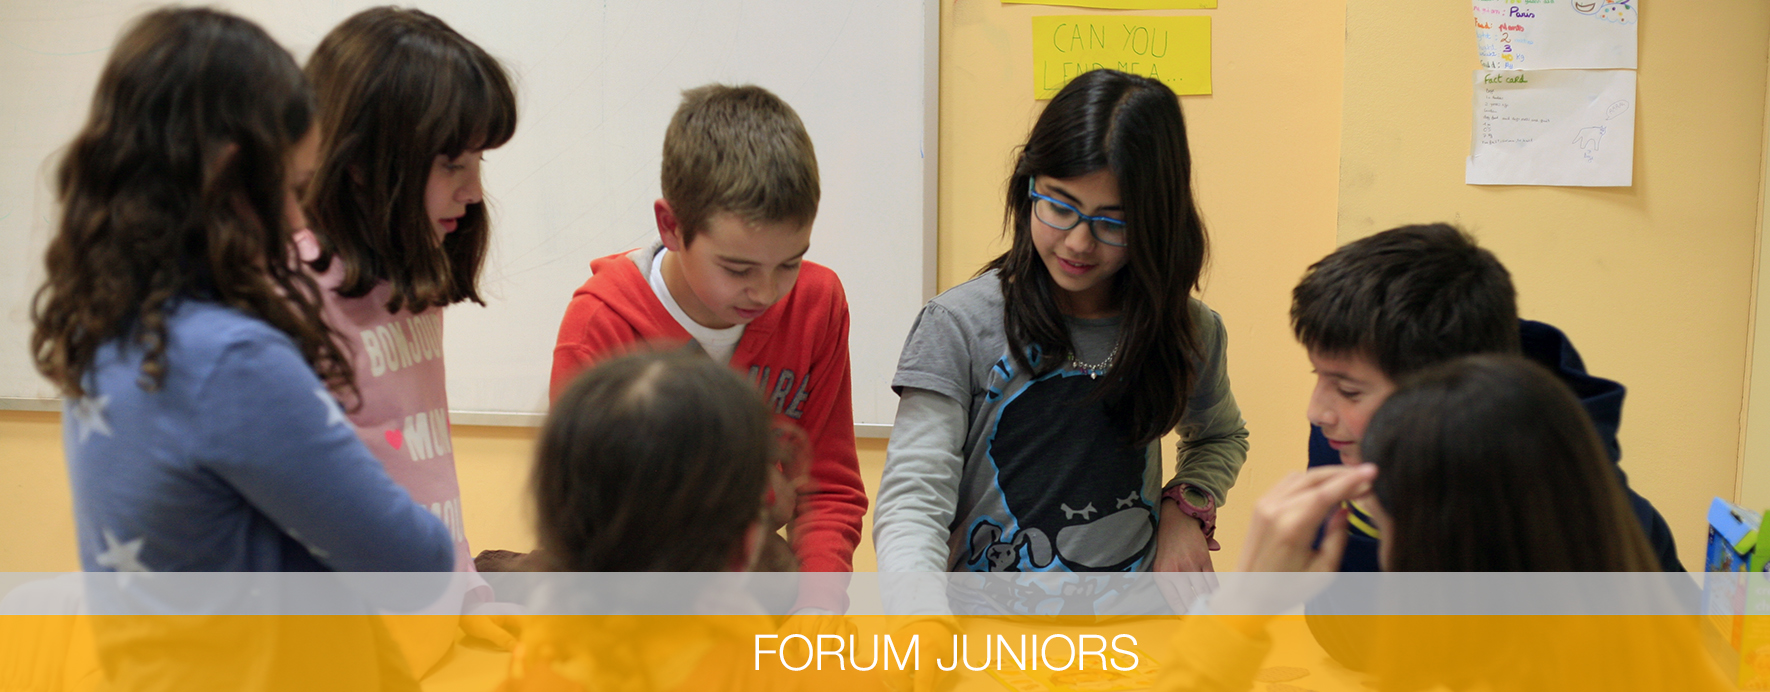 final_forum_juniors